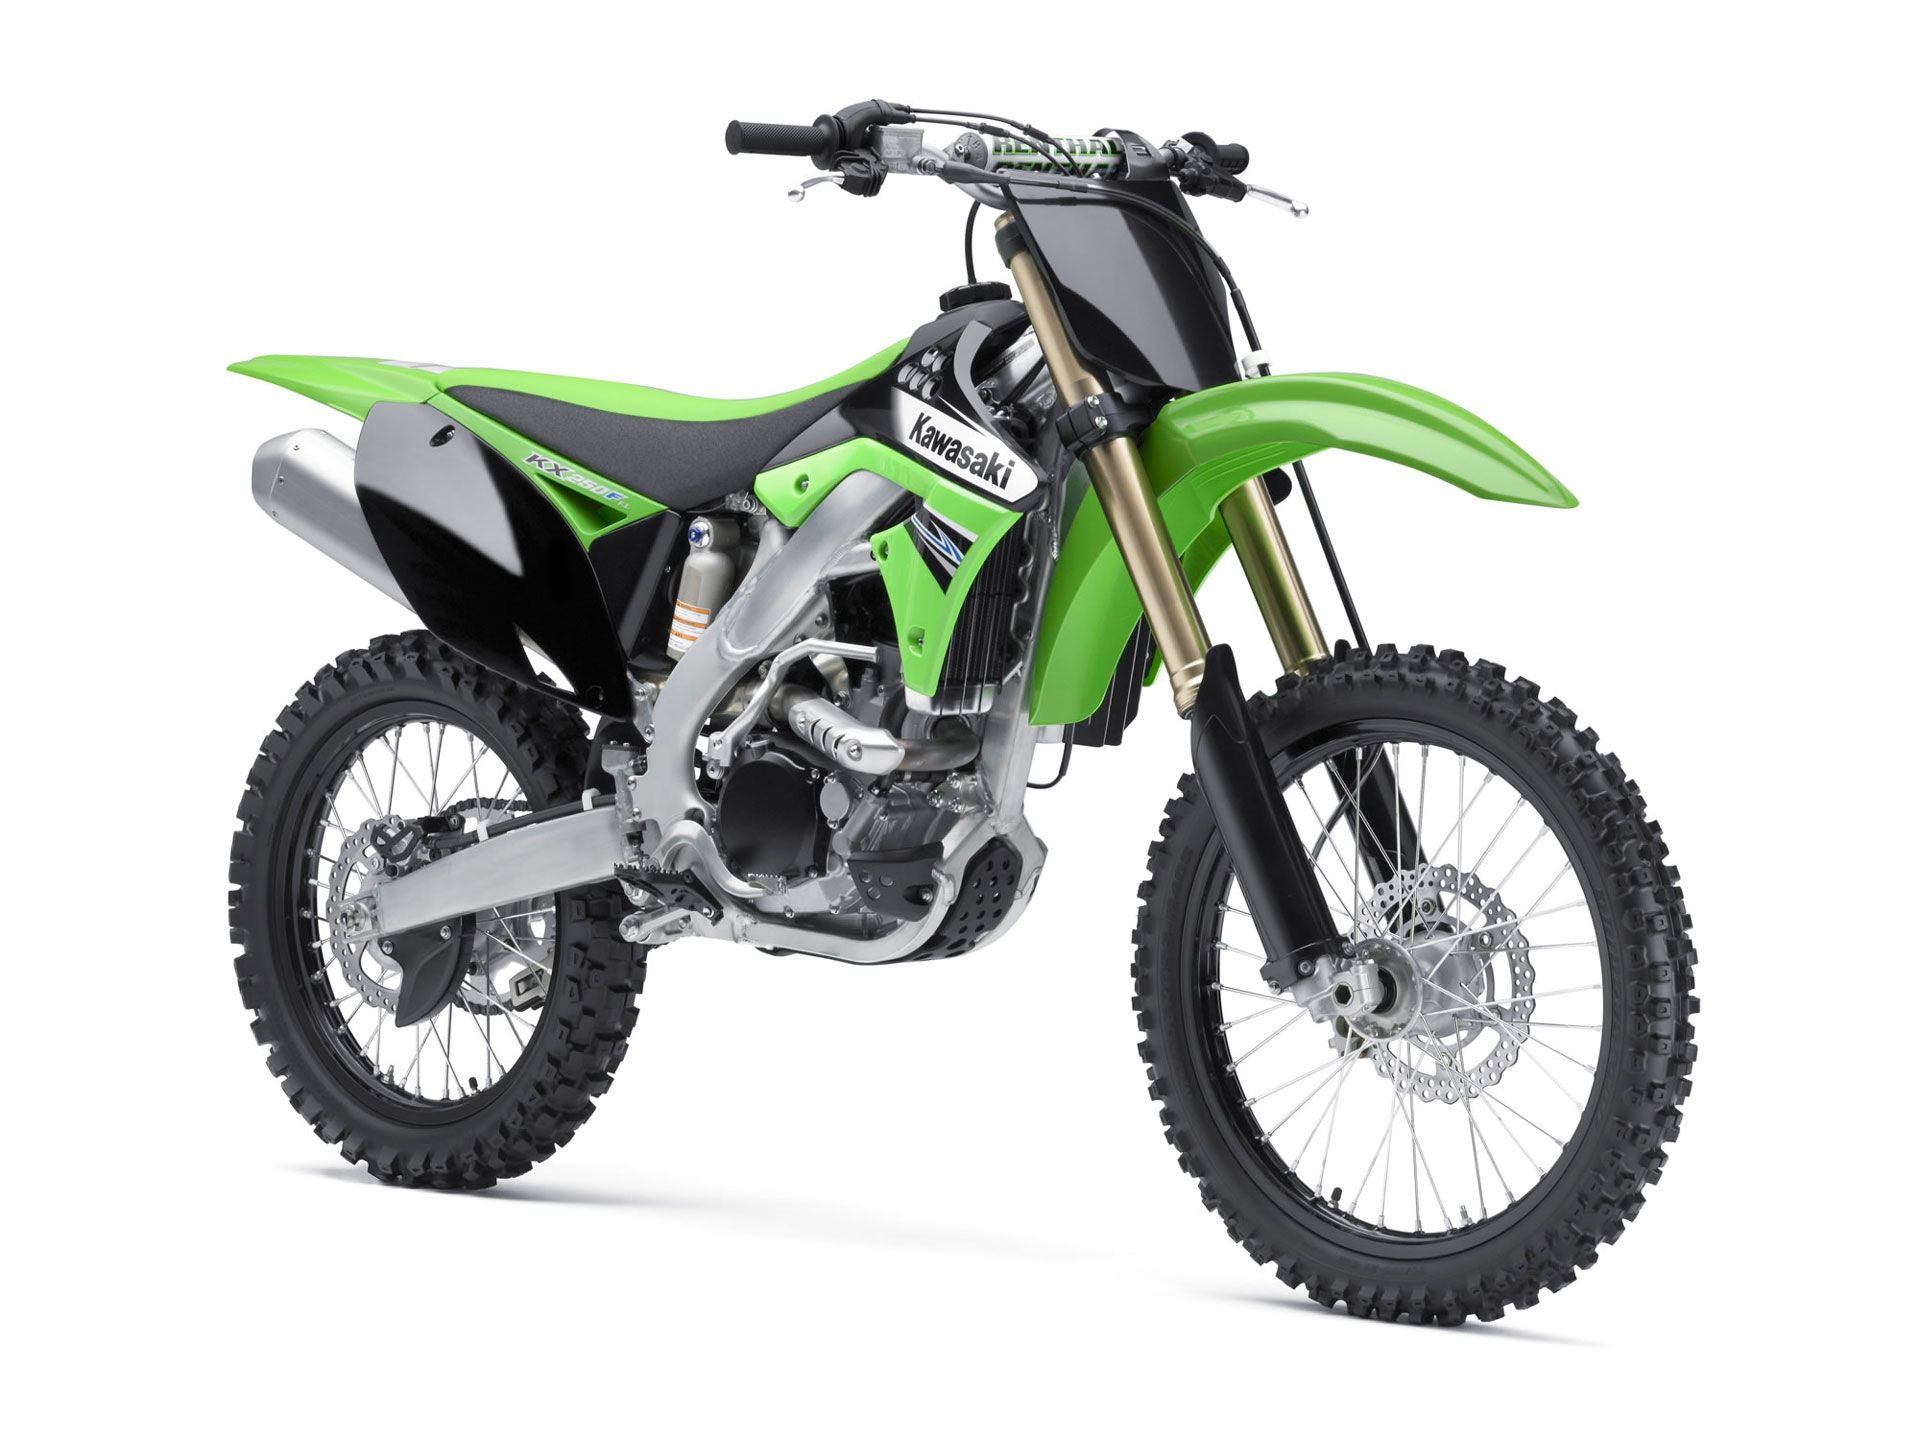 Kawasaki 2011 Kawasaki Kx250f Dirt Bike Motorcycle Custom Bikes